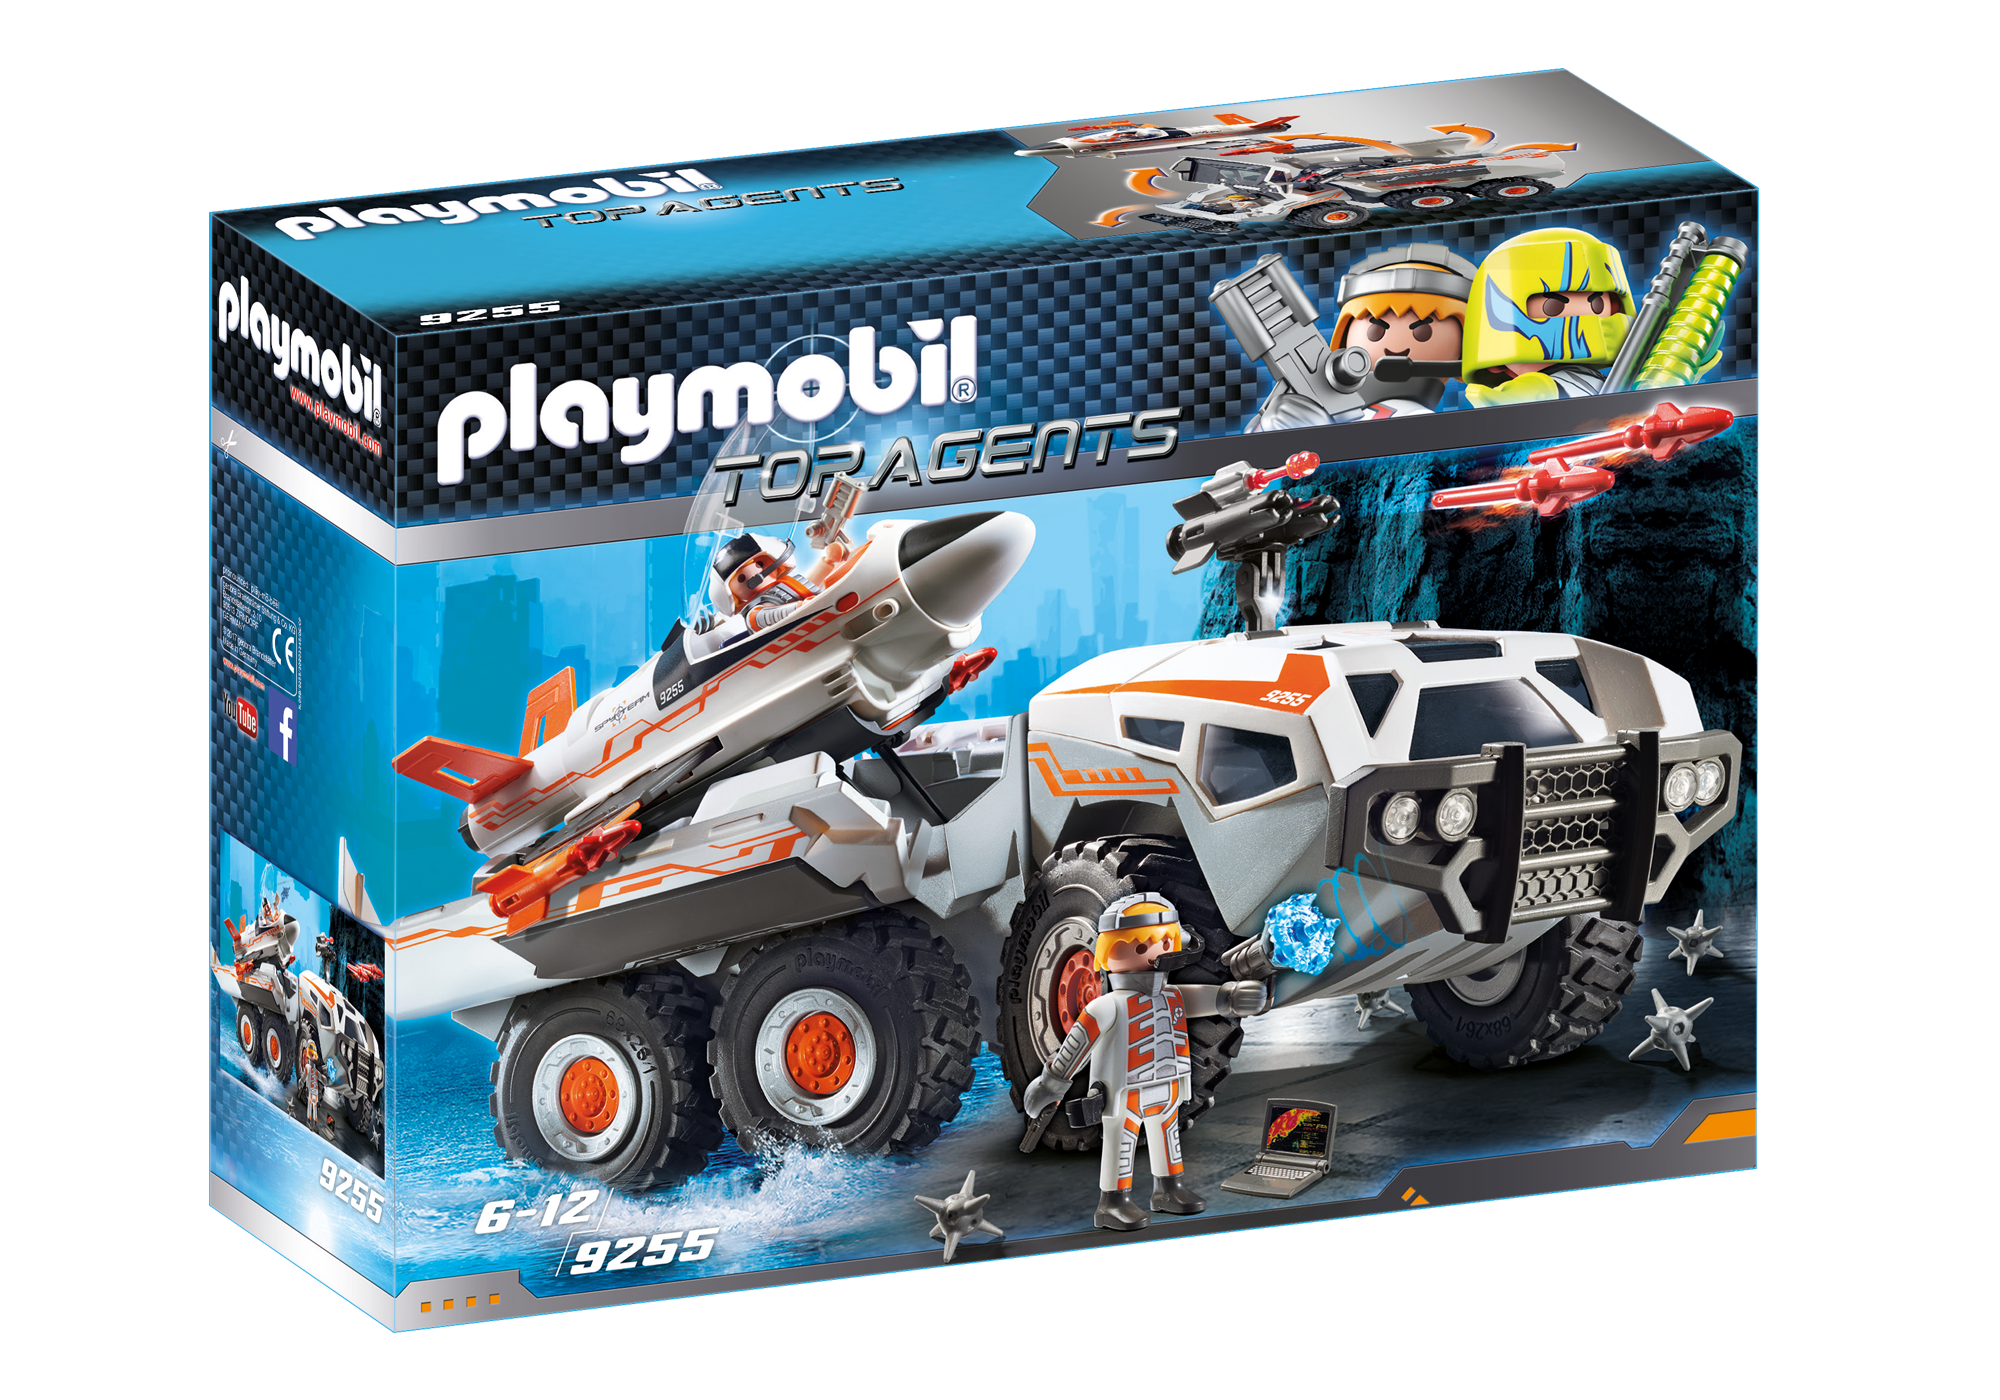 http://media.playmobil.com/i/playmobil/9255_product_box_front